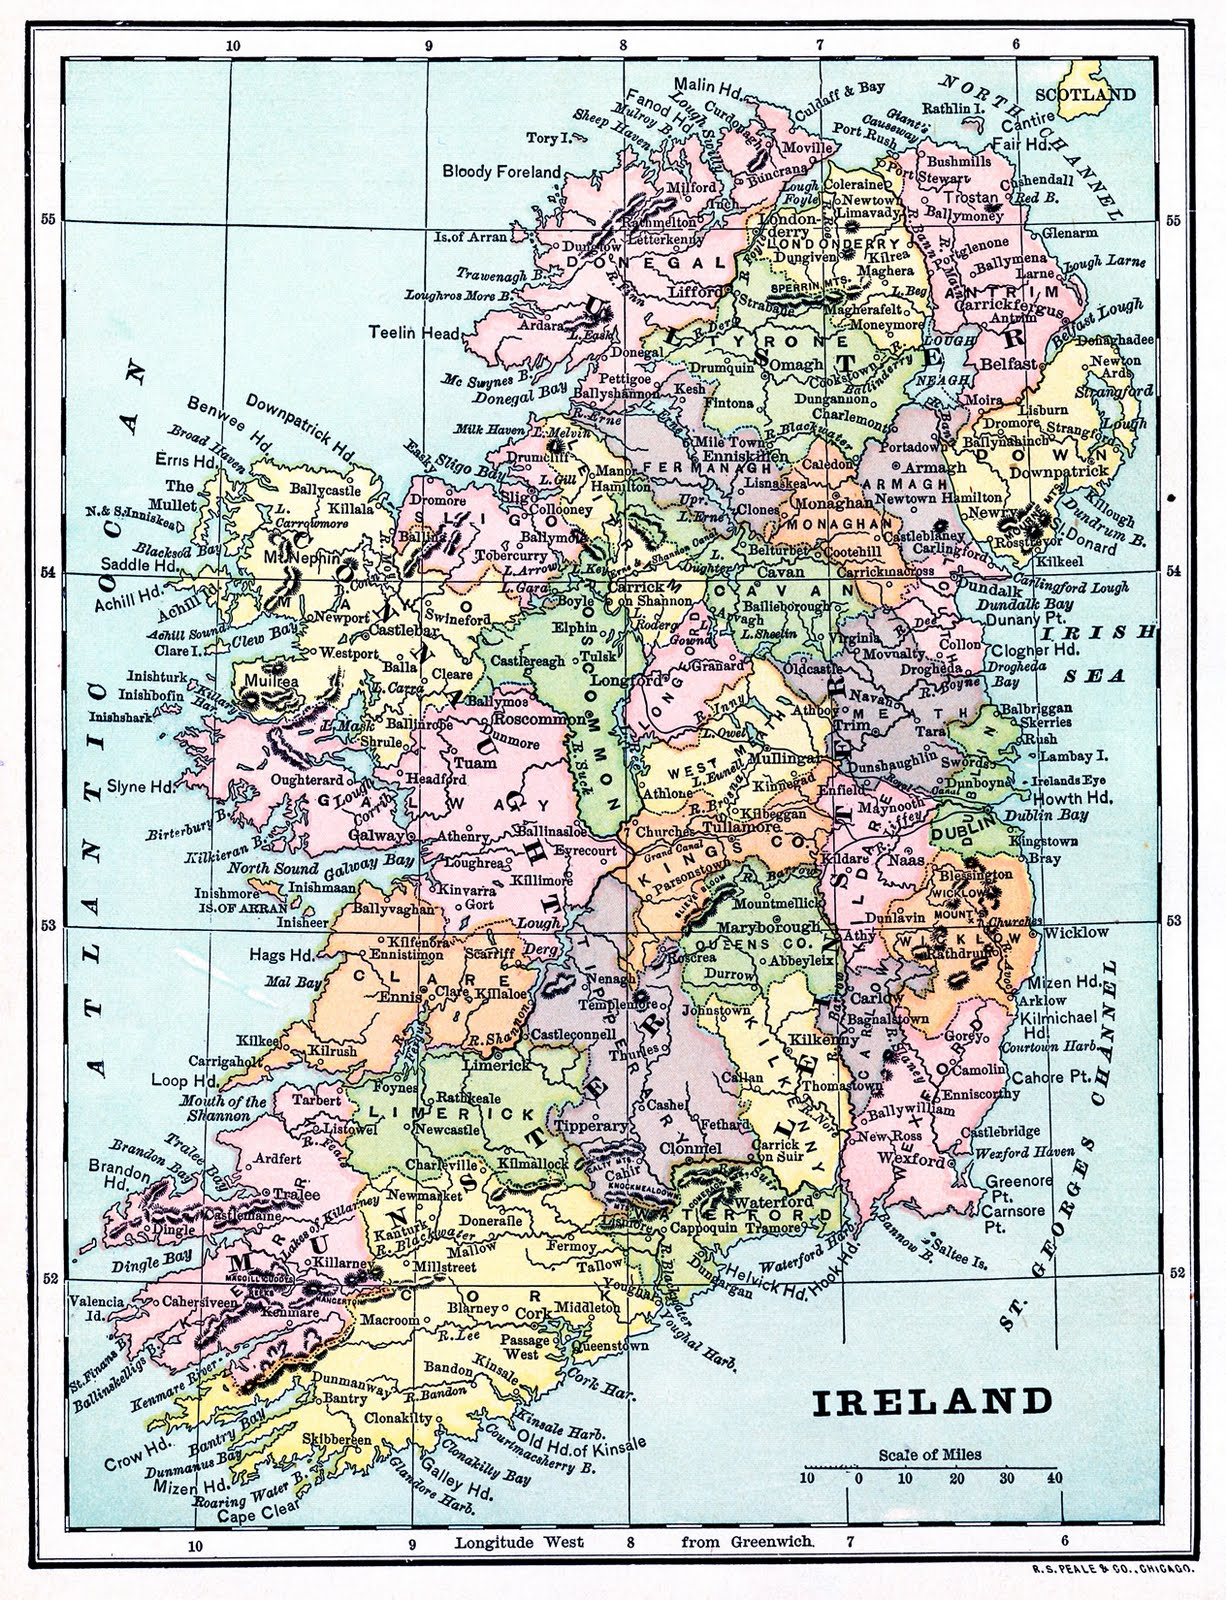 graphic relating to Printable Road Map of Ireland named Immediate Artwork Printable - Map of Eire - The Graphics Fairy